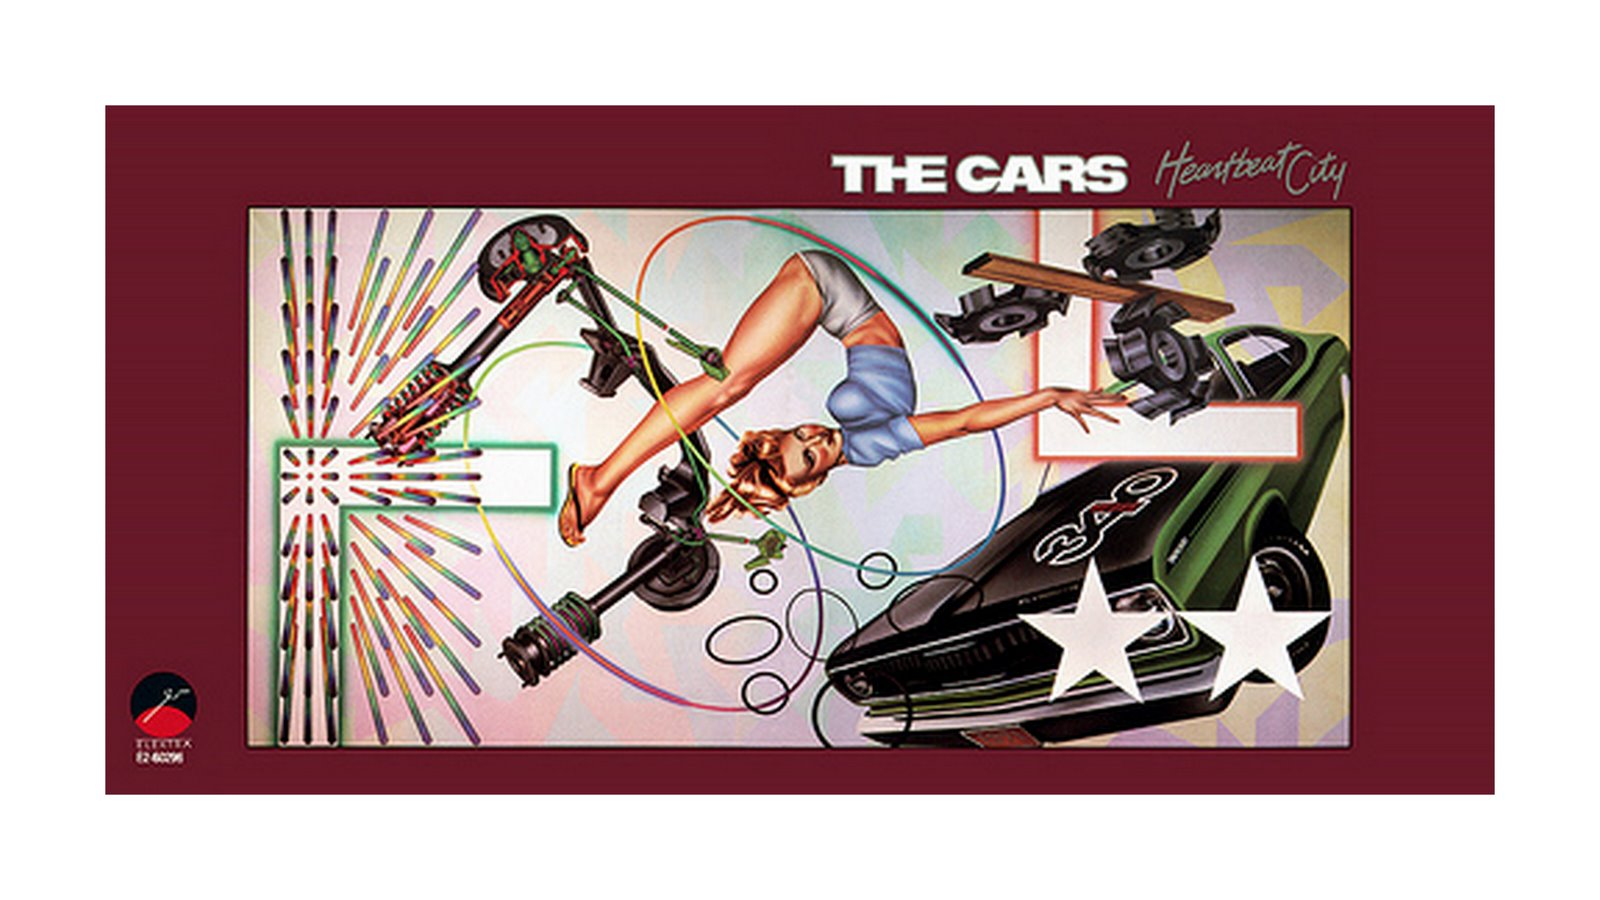 The Cars Heartbeat City Album